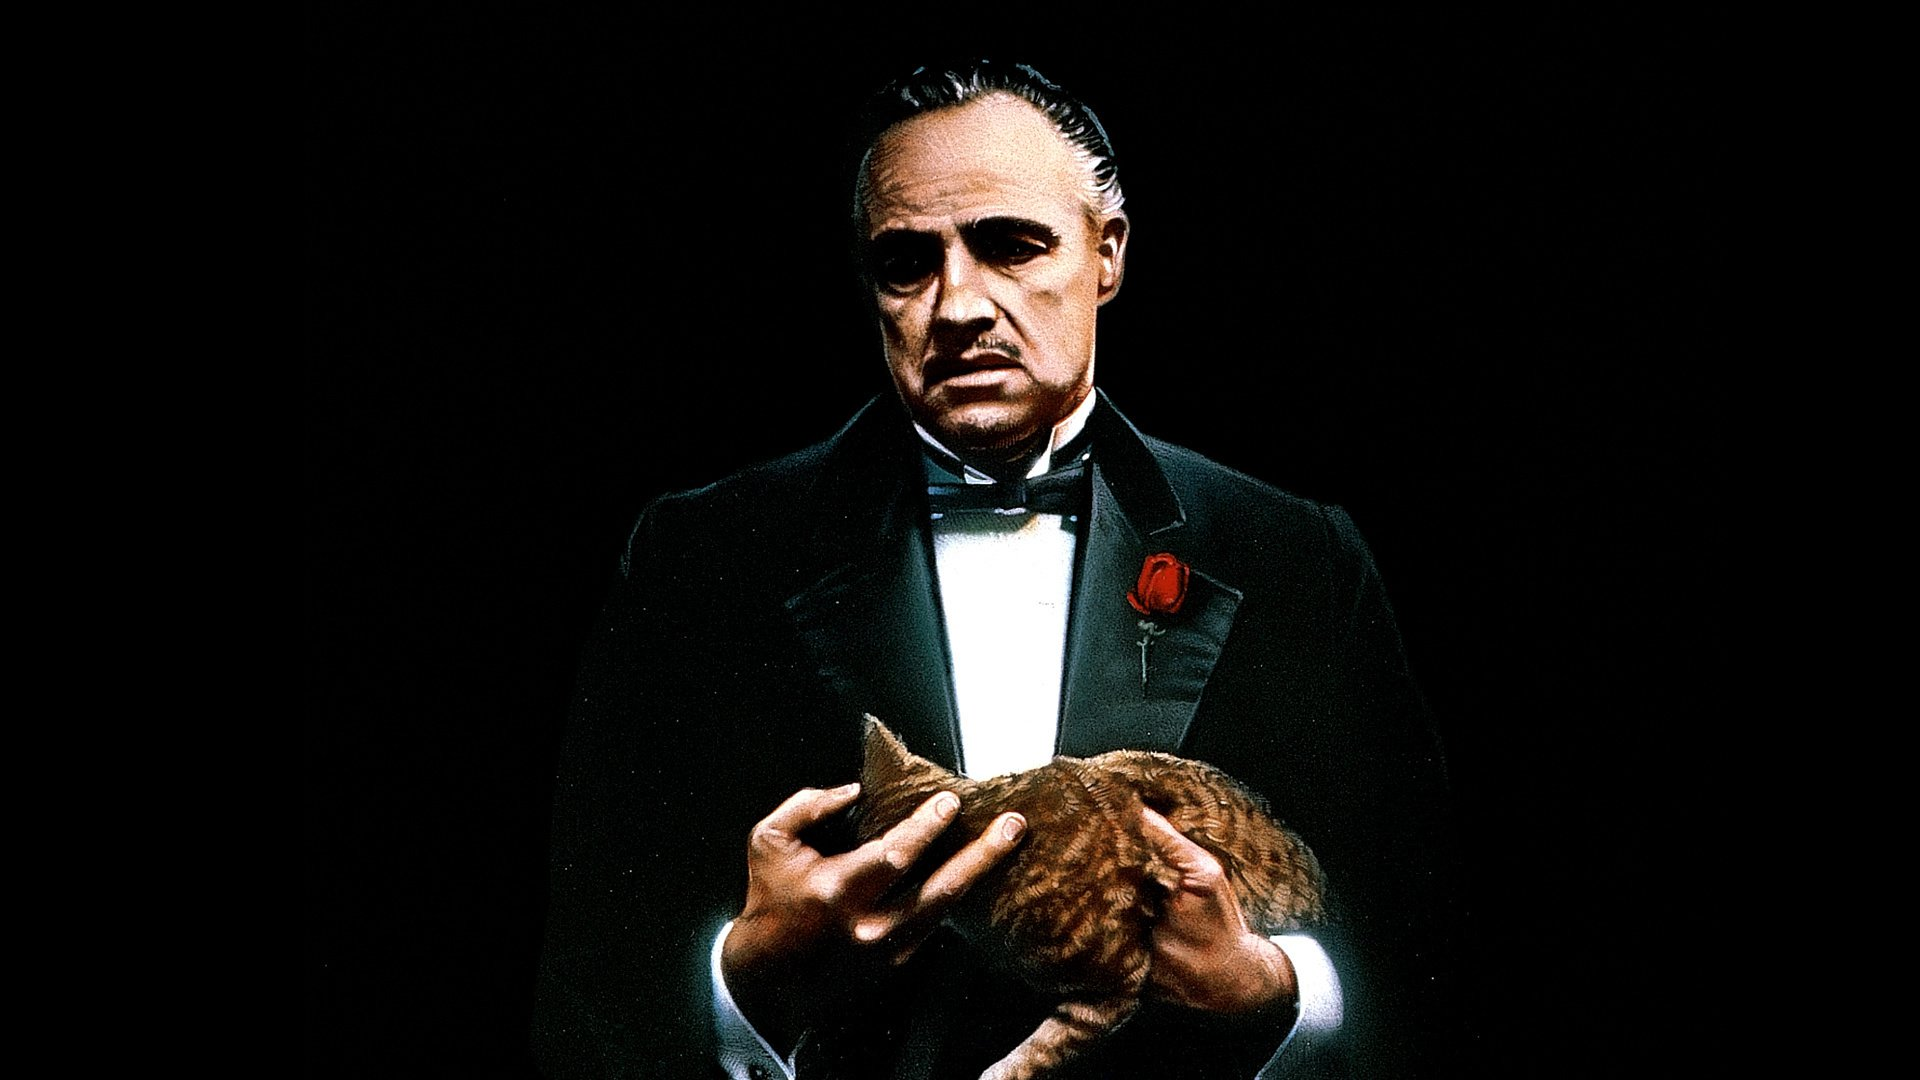 Amazing Marlon Brando Wallpapers